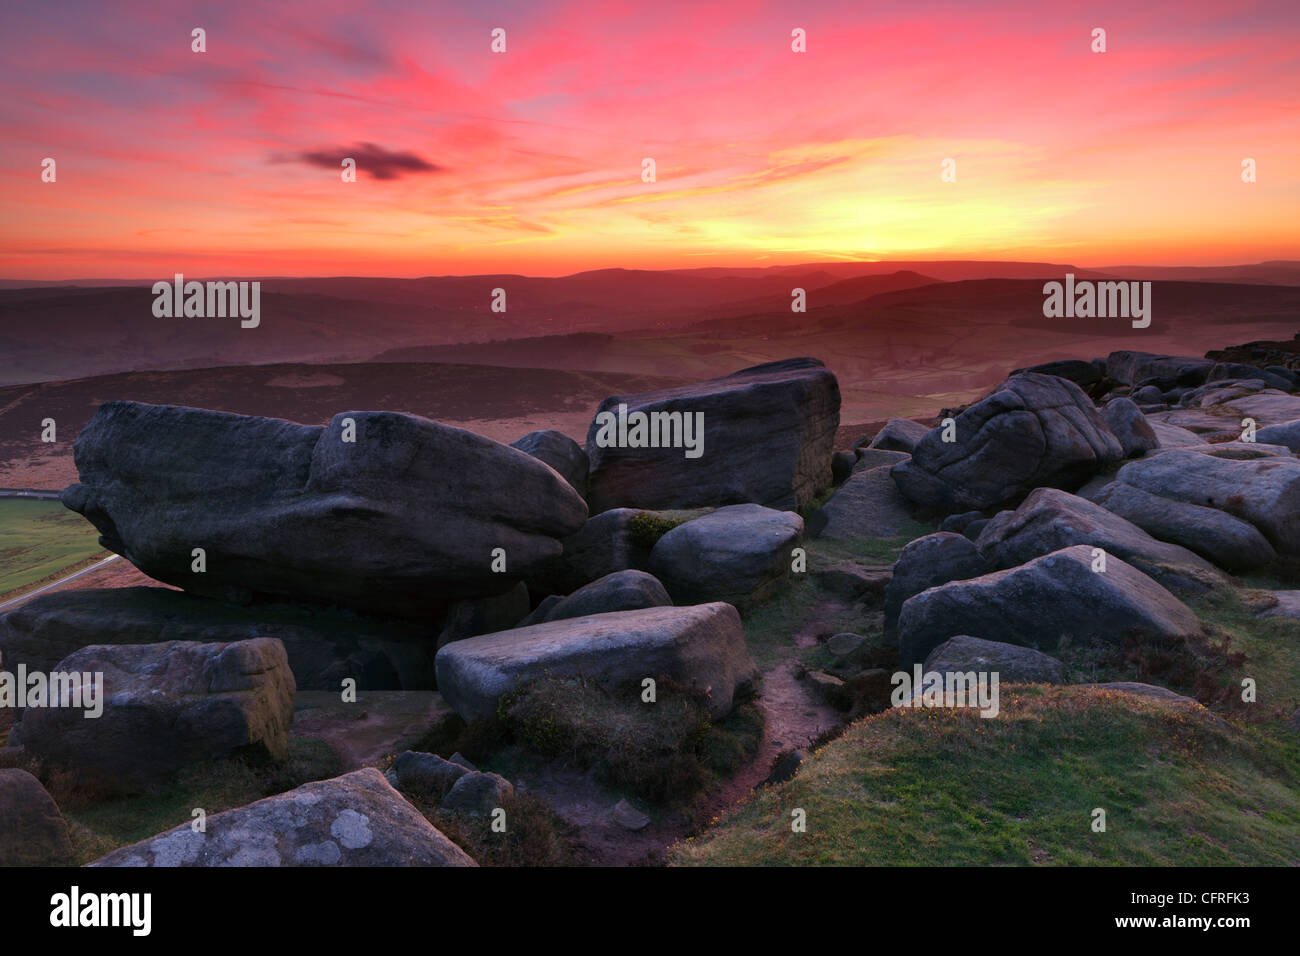 Horizontal Photograph of the View from Stanage Edge in the Peak District National Park - Stock Image